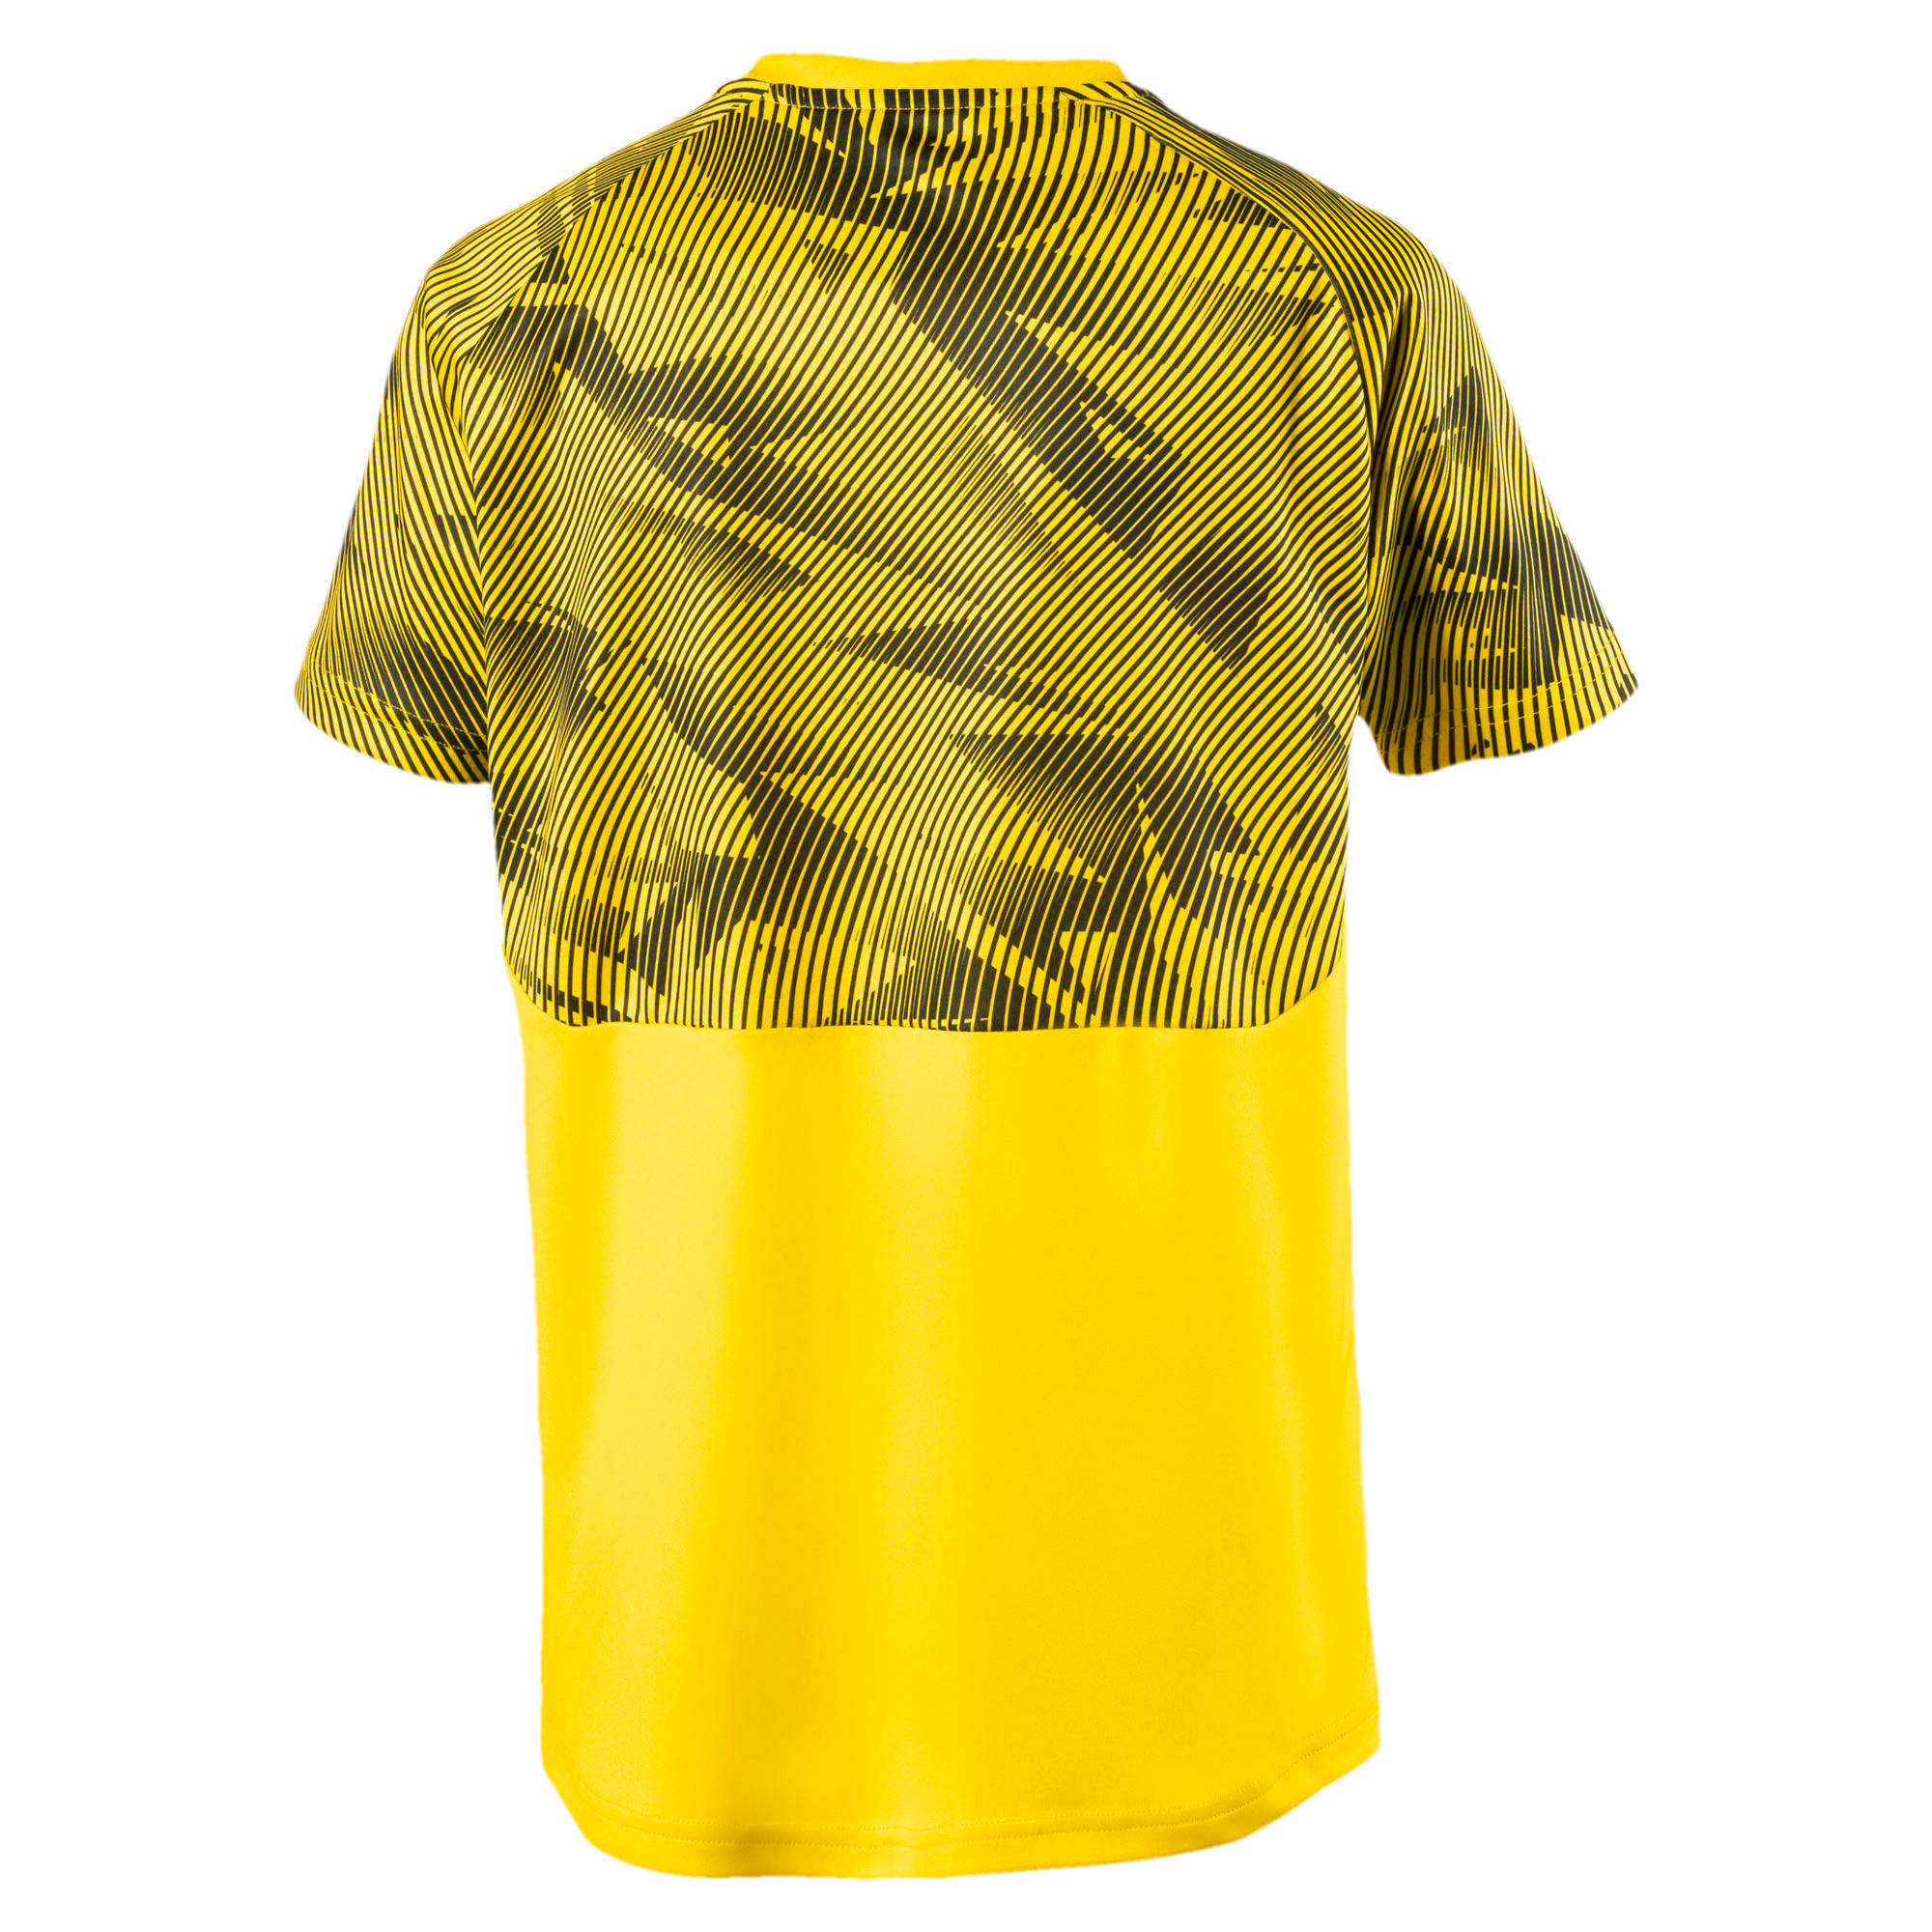 Thumbnail 2 of BVB Kids' Training Jersey, Cyber Yellow-Puma Black, medium